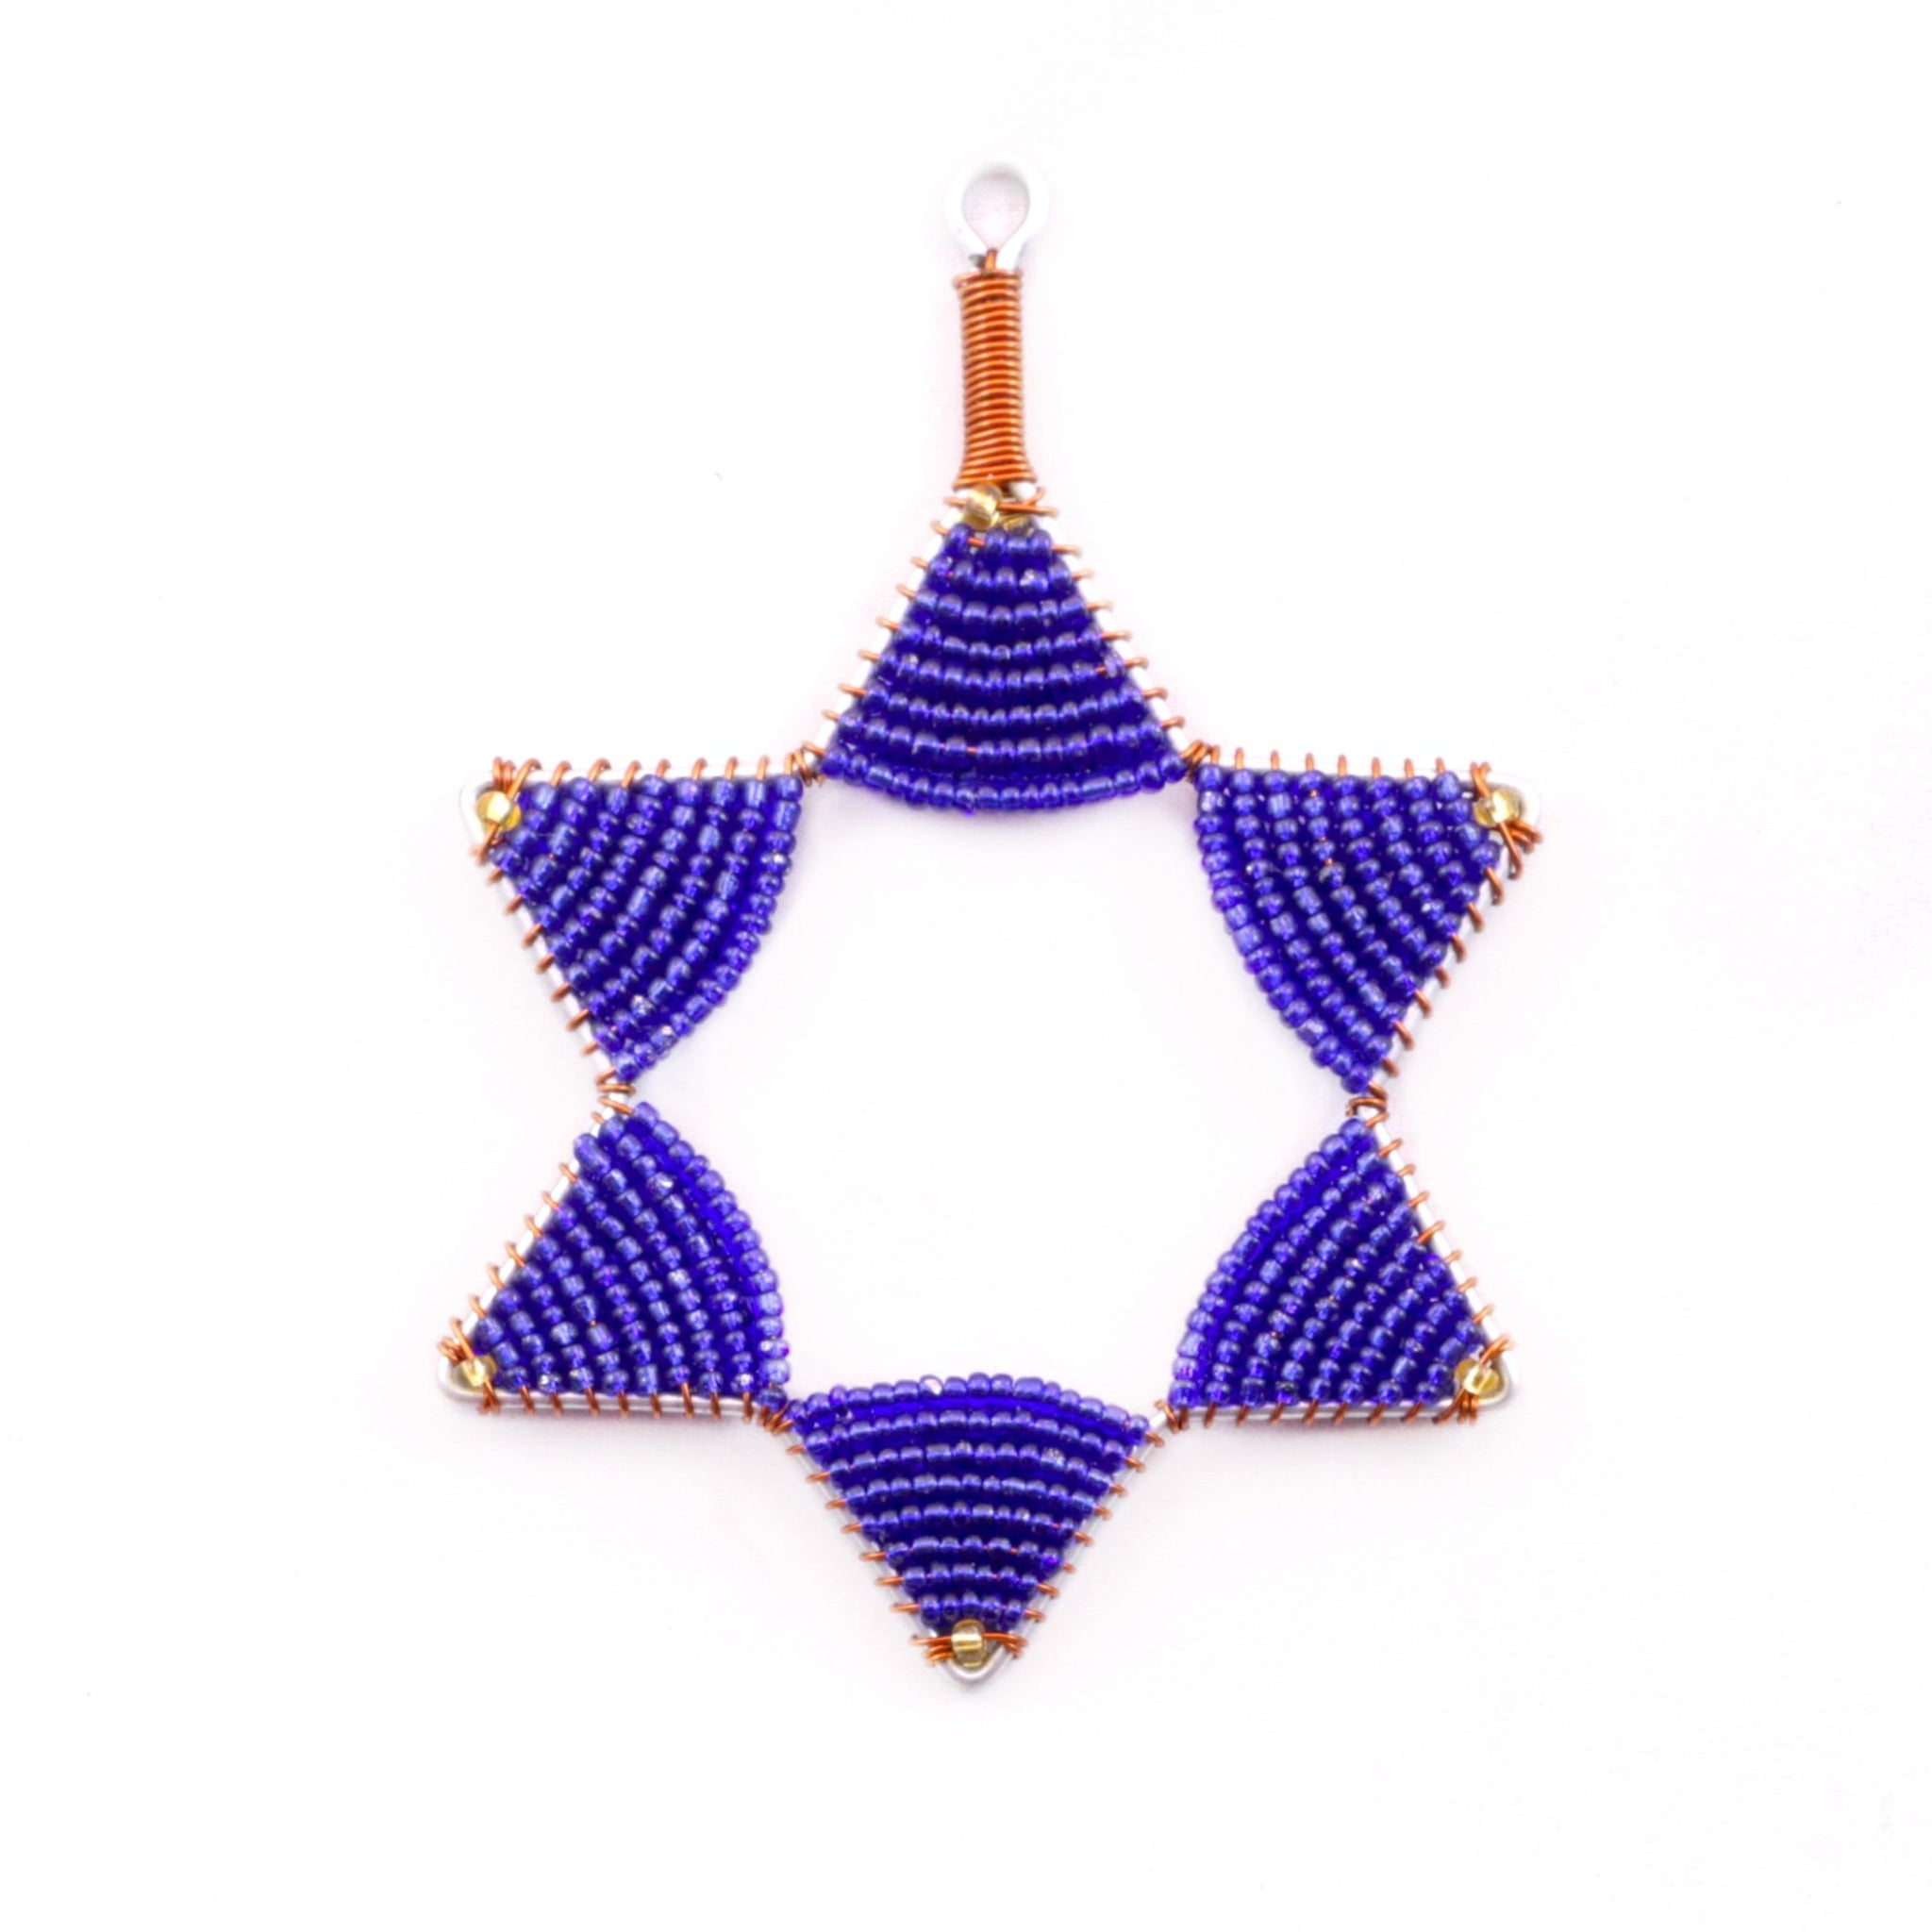 Star of David Hanukkah Ornament Fair Trade